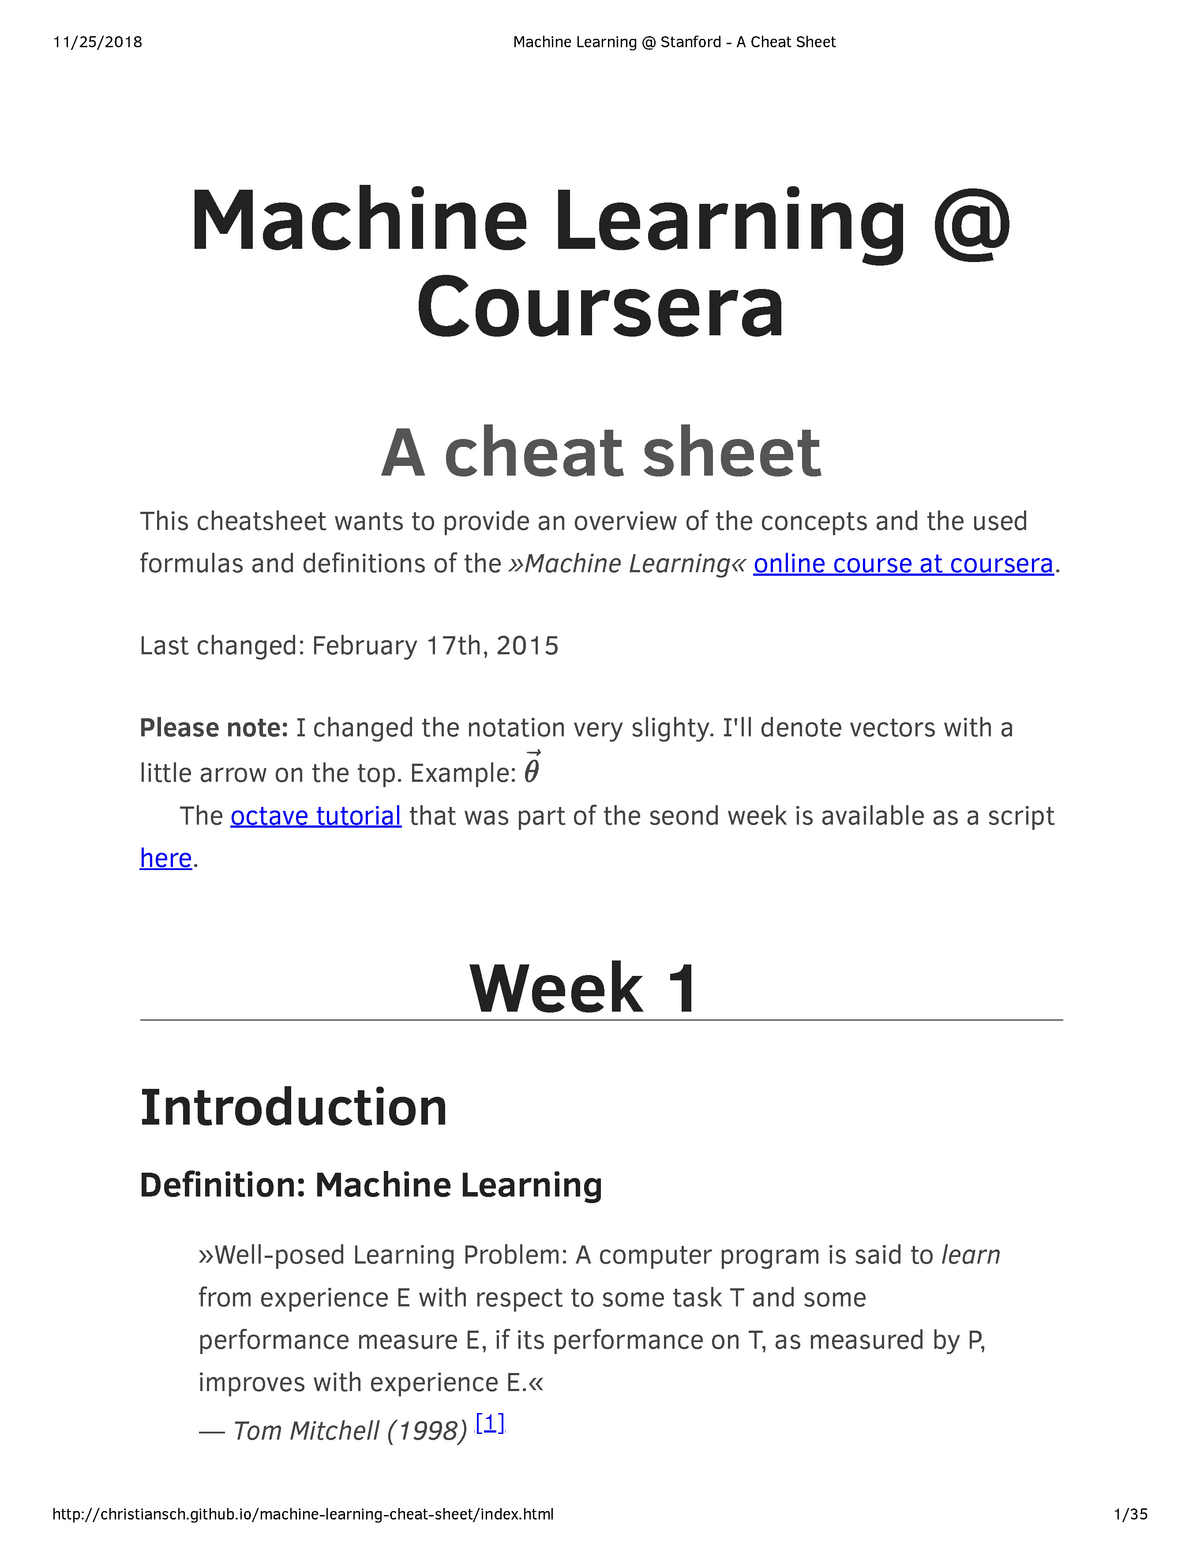 Machine Learning @ Stanford - A Cheat Sheet - CS 229 - StuDocu